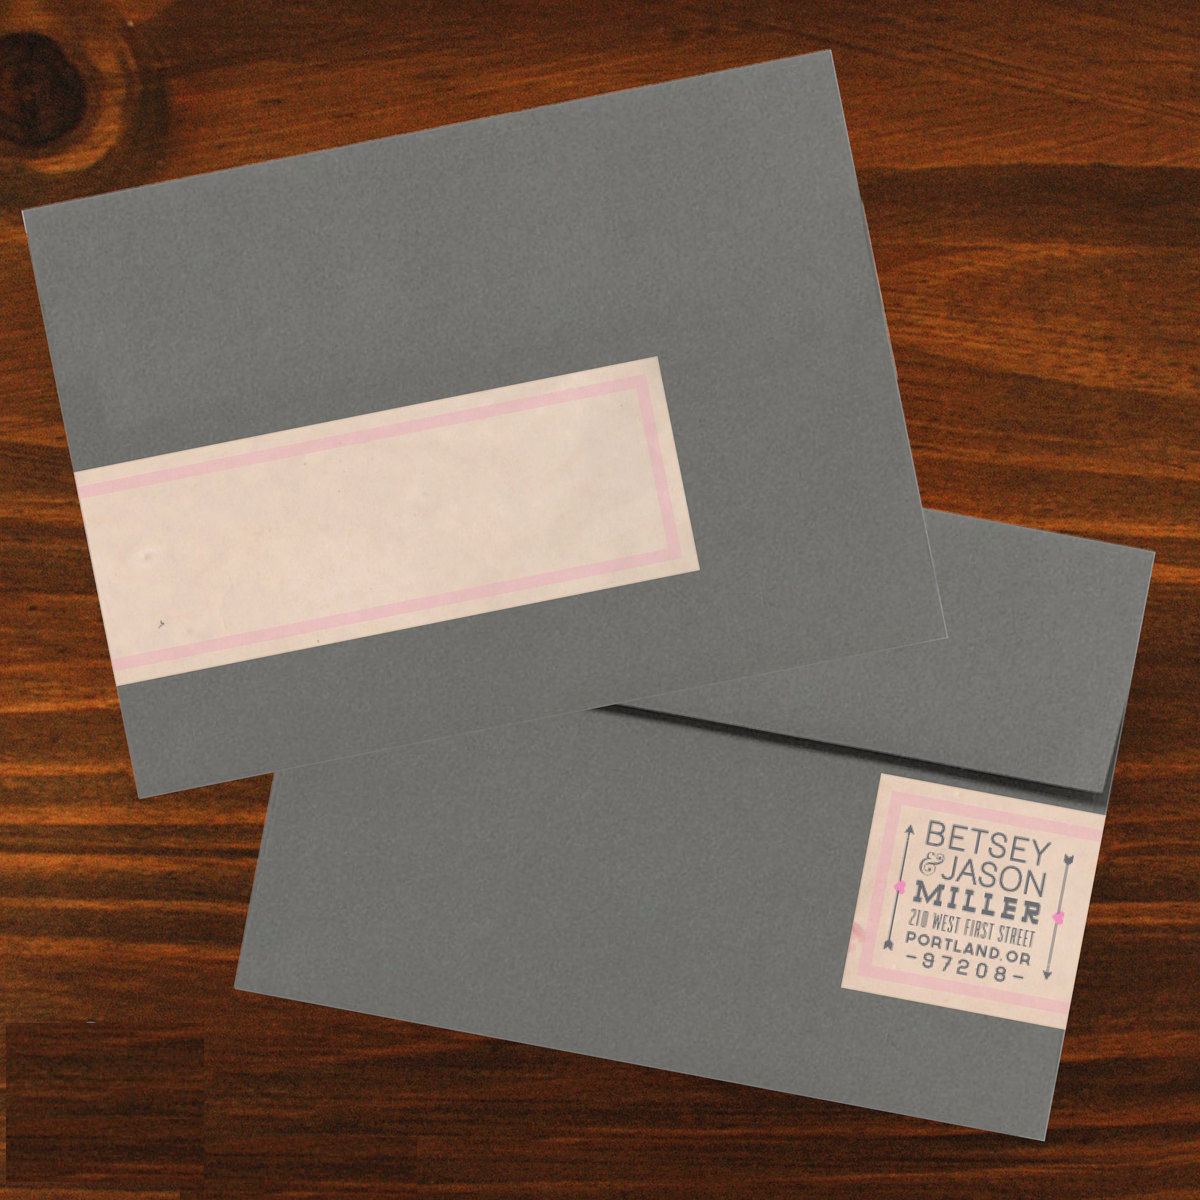 Design Trends Premium Psd: 10+ Wedding Envelope Designs